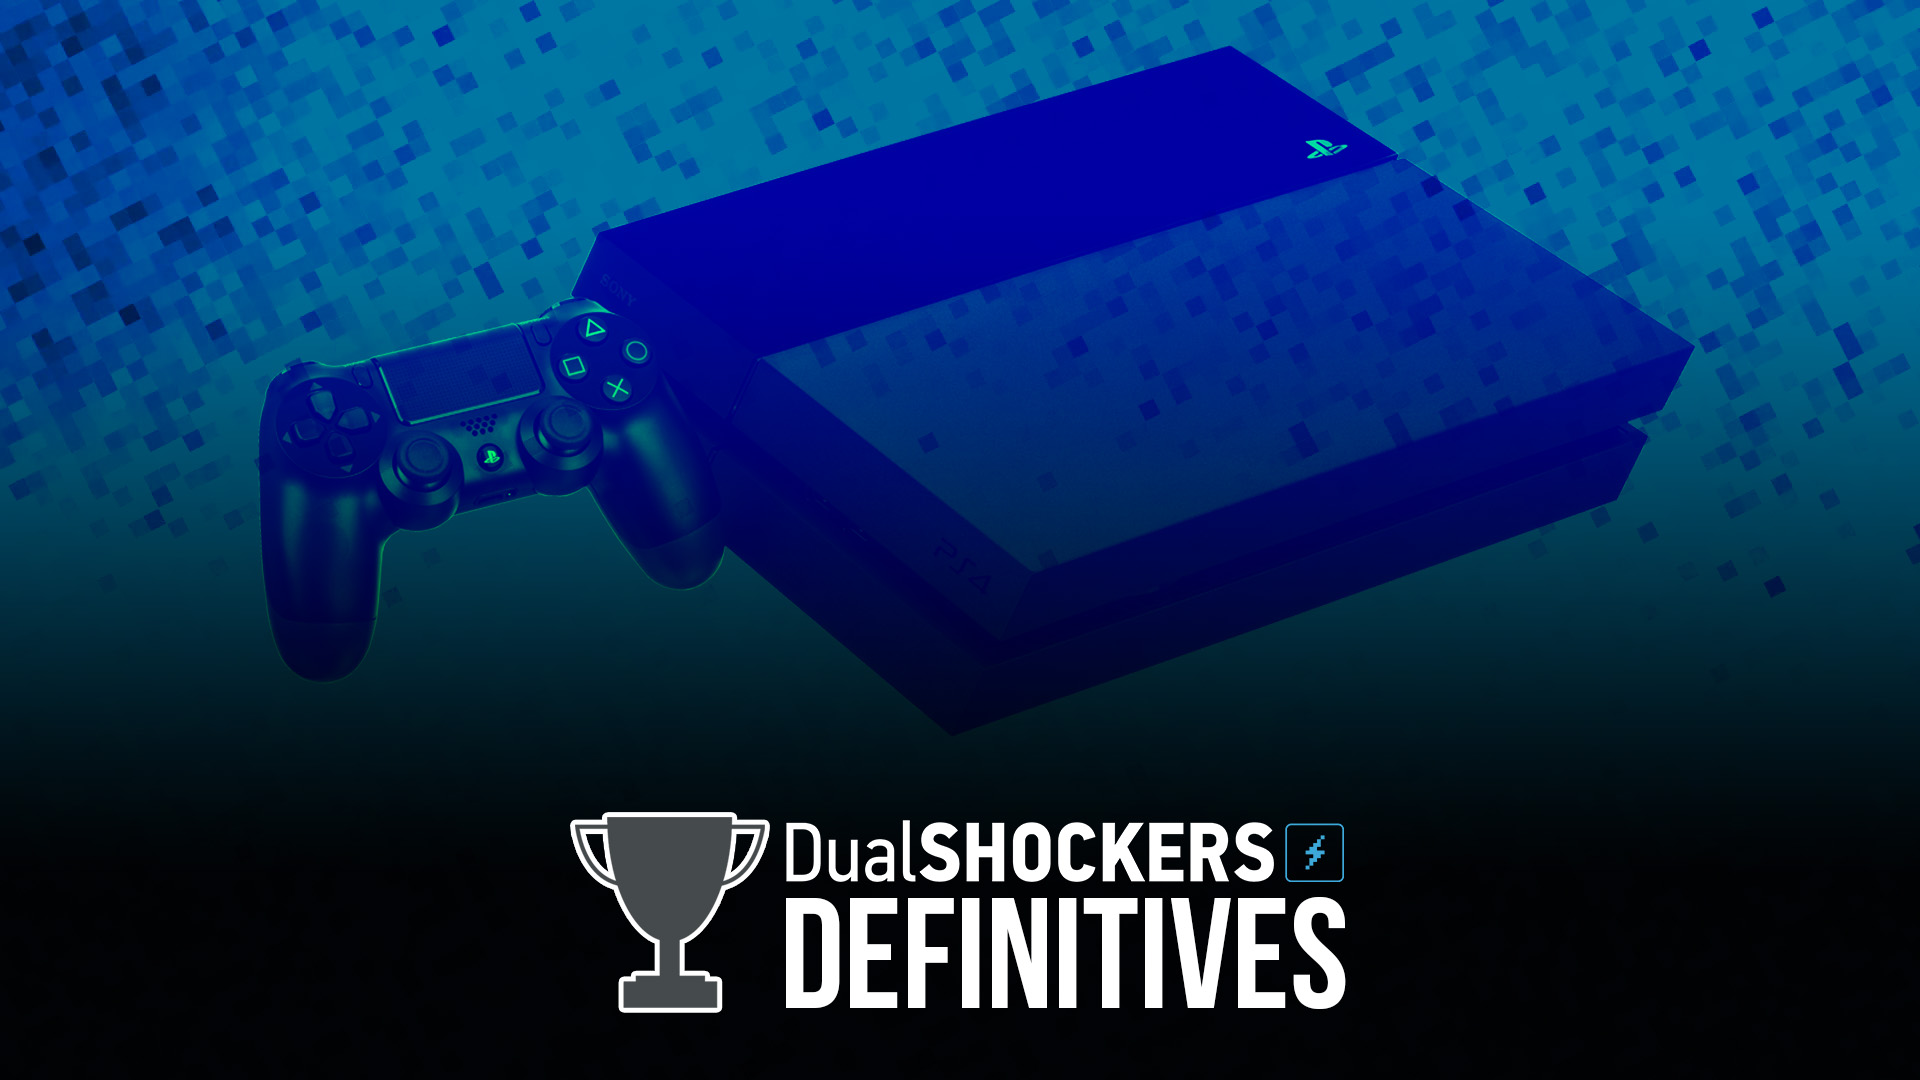 DualShockers Definitives — The Top 10 Essential PS4 Games